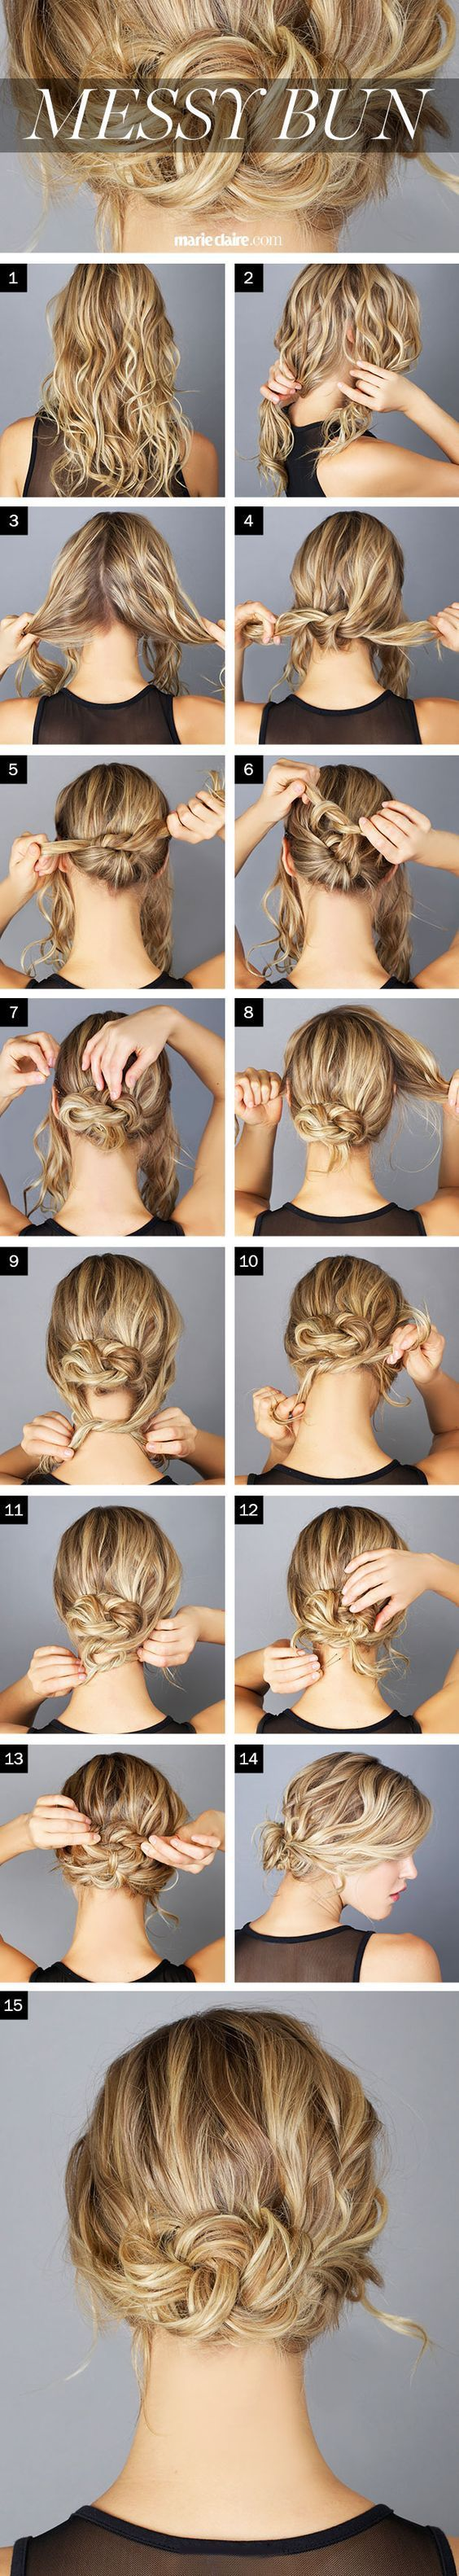 21 Easy Messy Bun Tutorials For The Perfect Disheveled Look